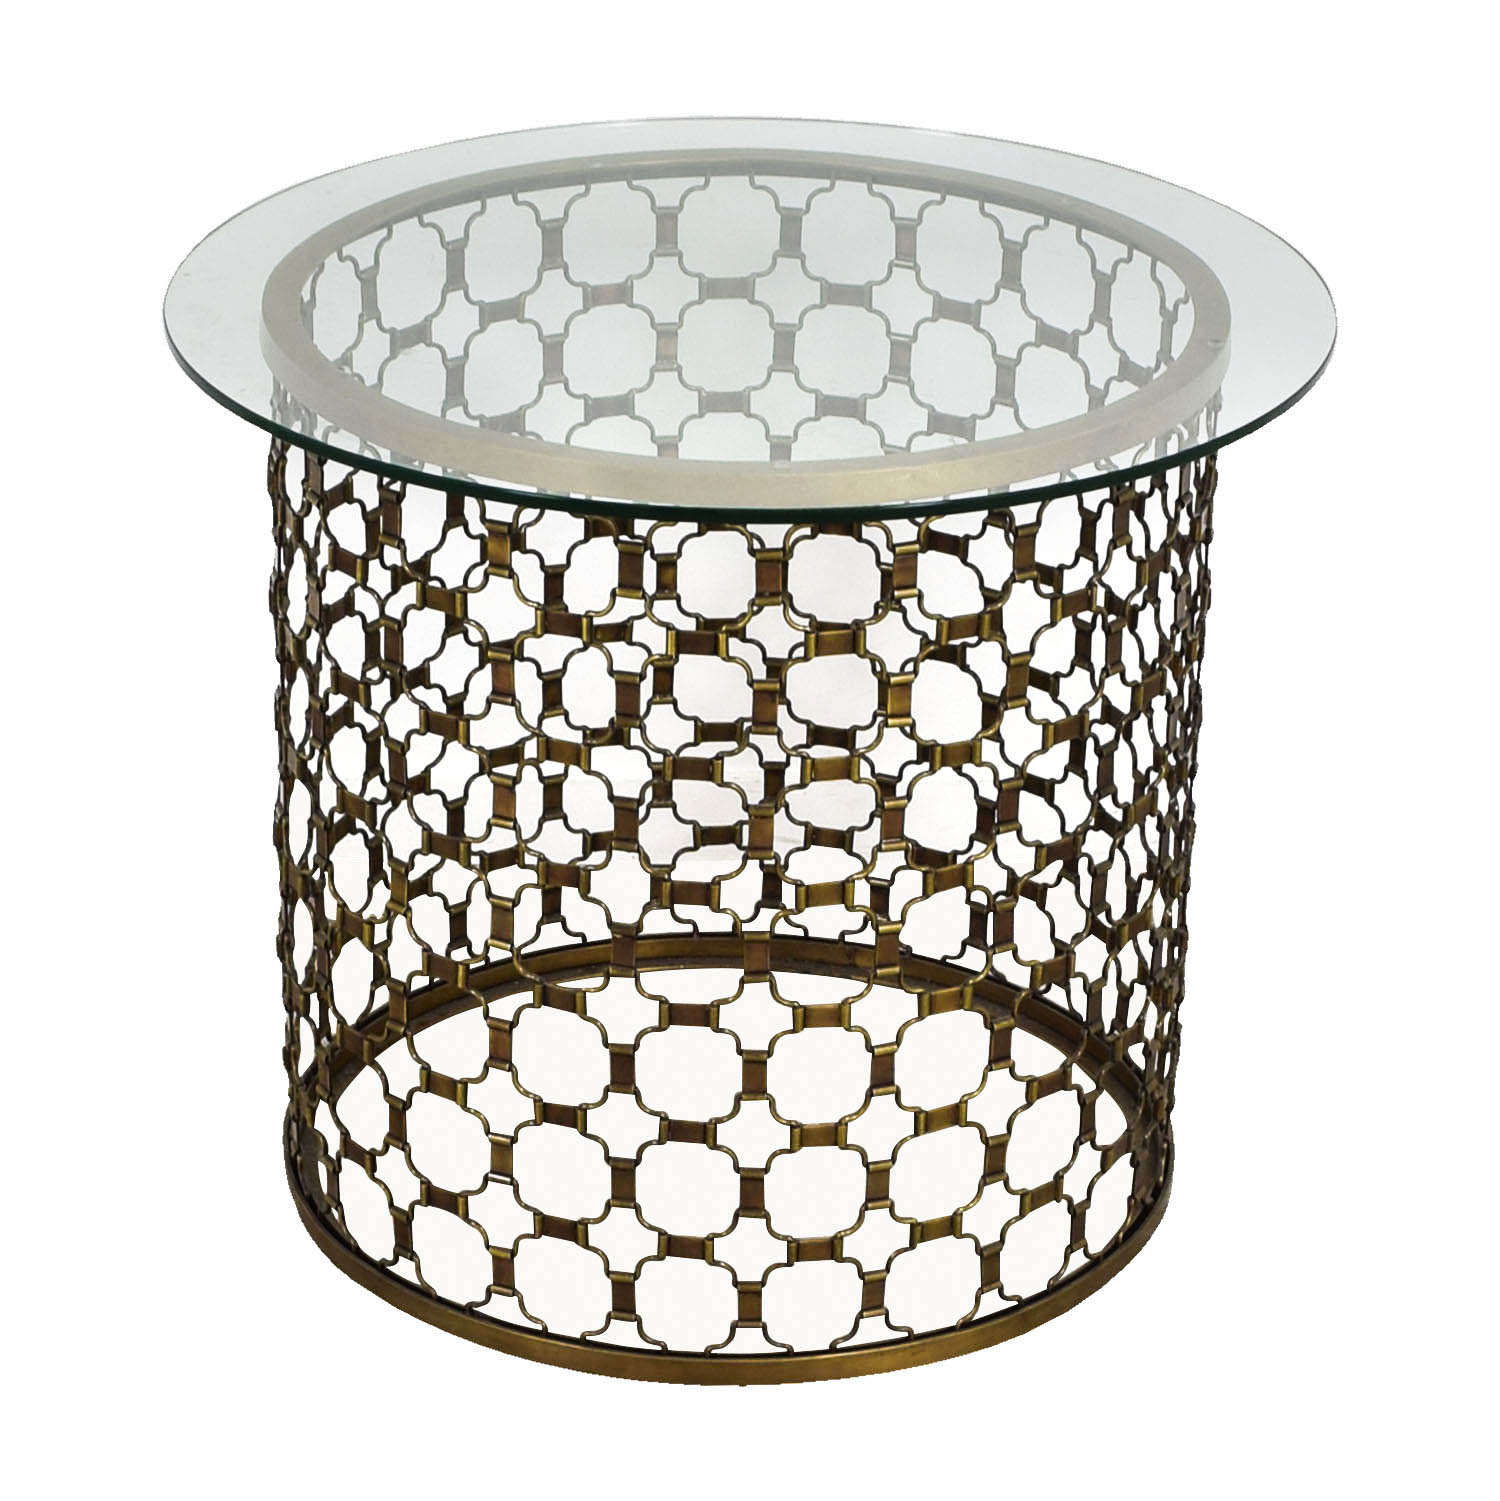 buy Naomi Round Brass and Glass Dining Table Naomi Dinner Tables